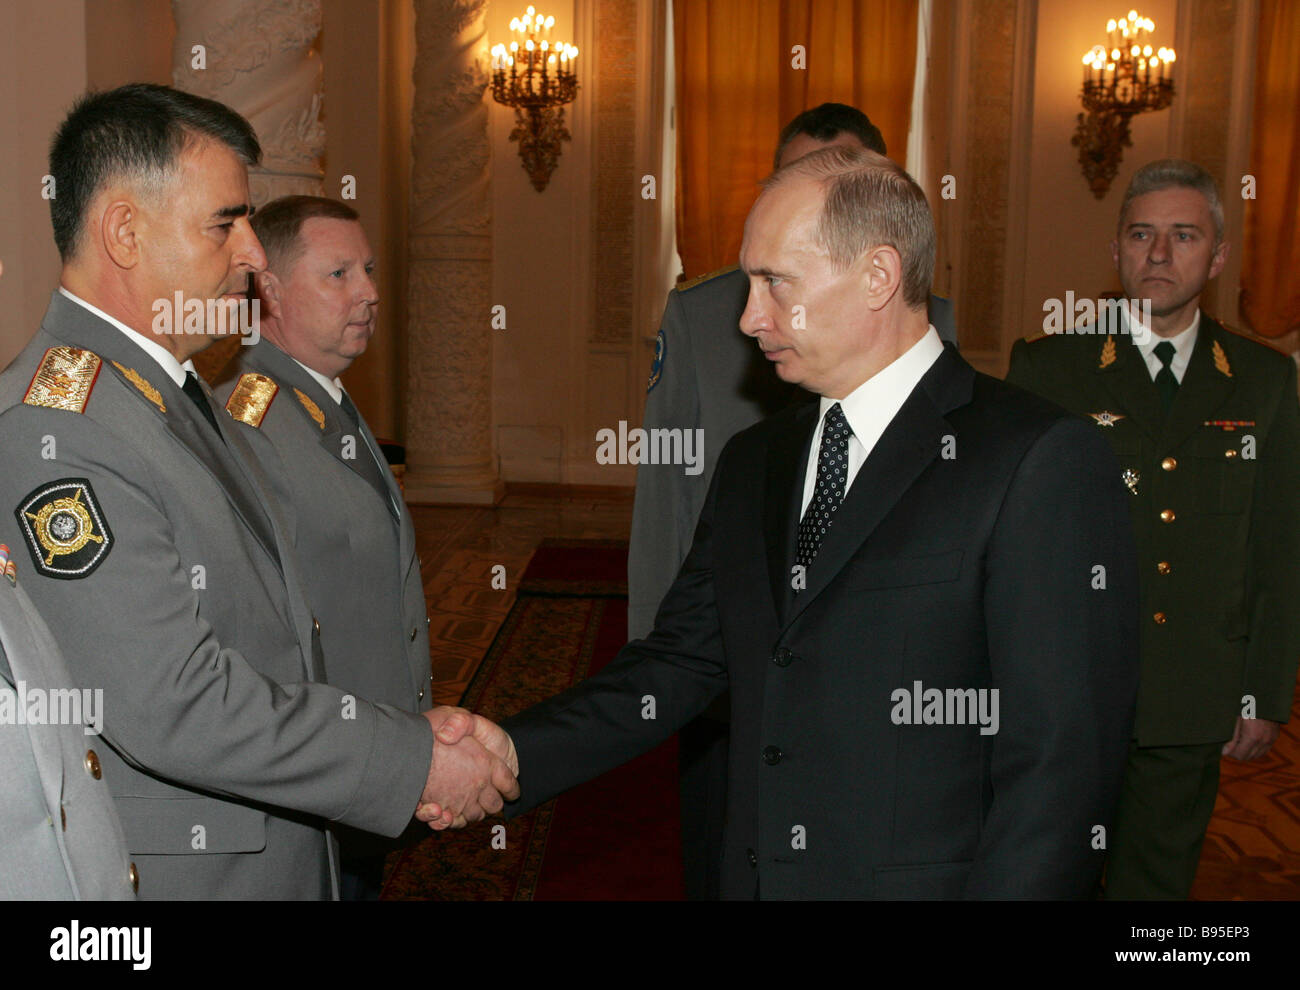 Chechen Interior Minister Ruslan Alkhanov left and President Vladimir Putin right in St George Hall of the Grand - Stock Image